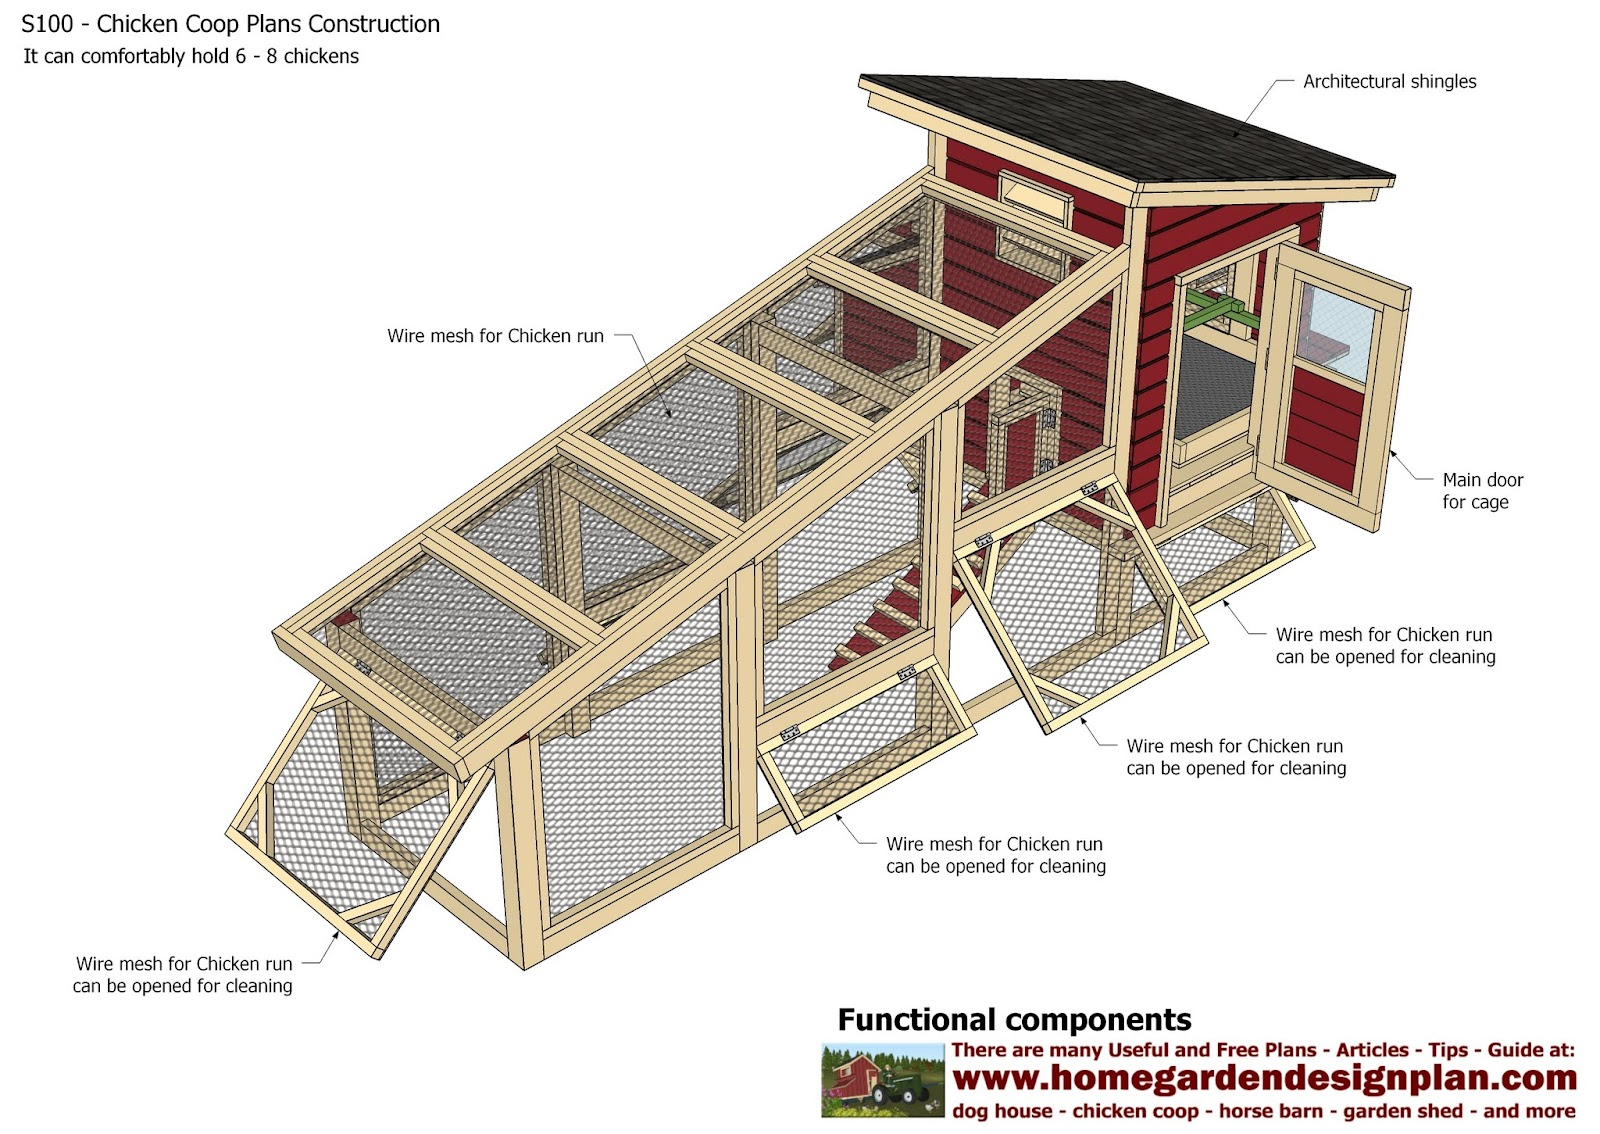 Home garden plans s100 chicken coop plans construction for Plans for chicken coops